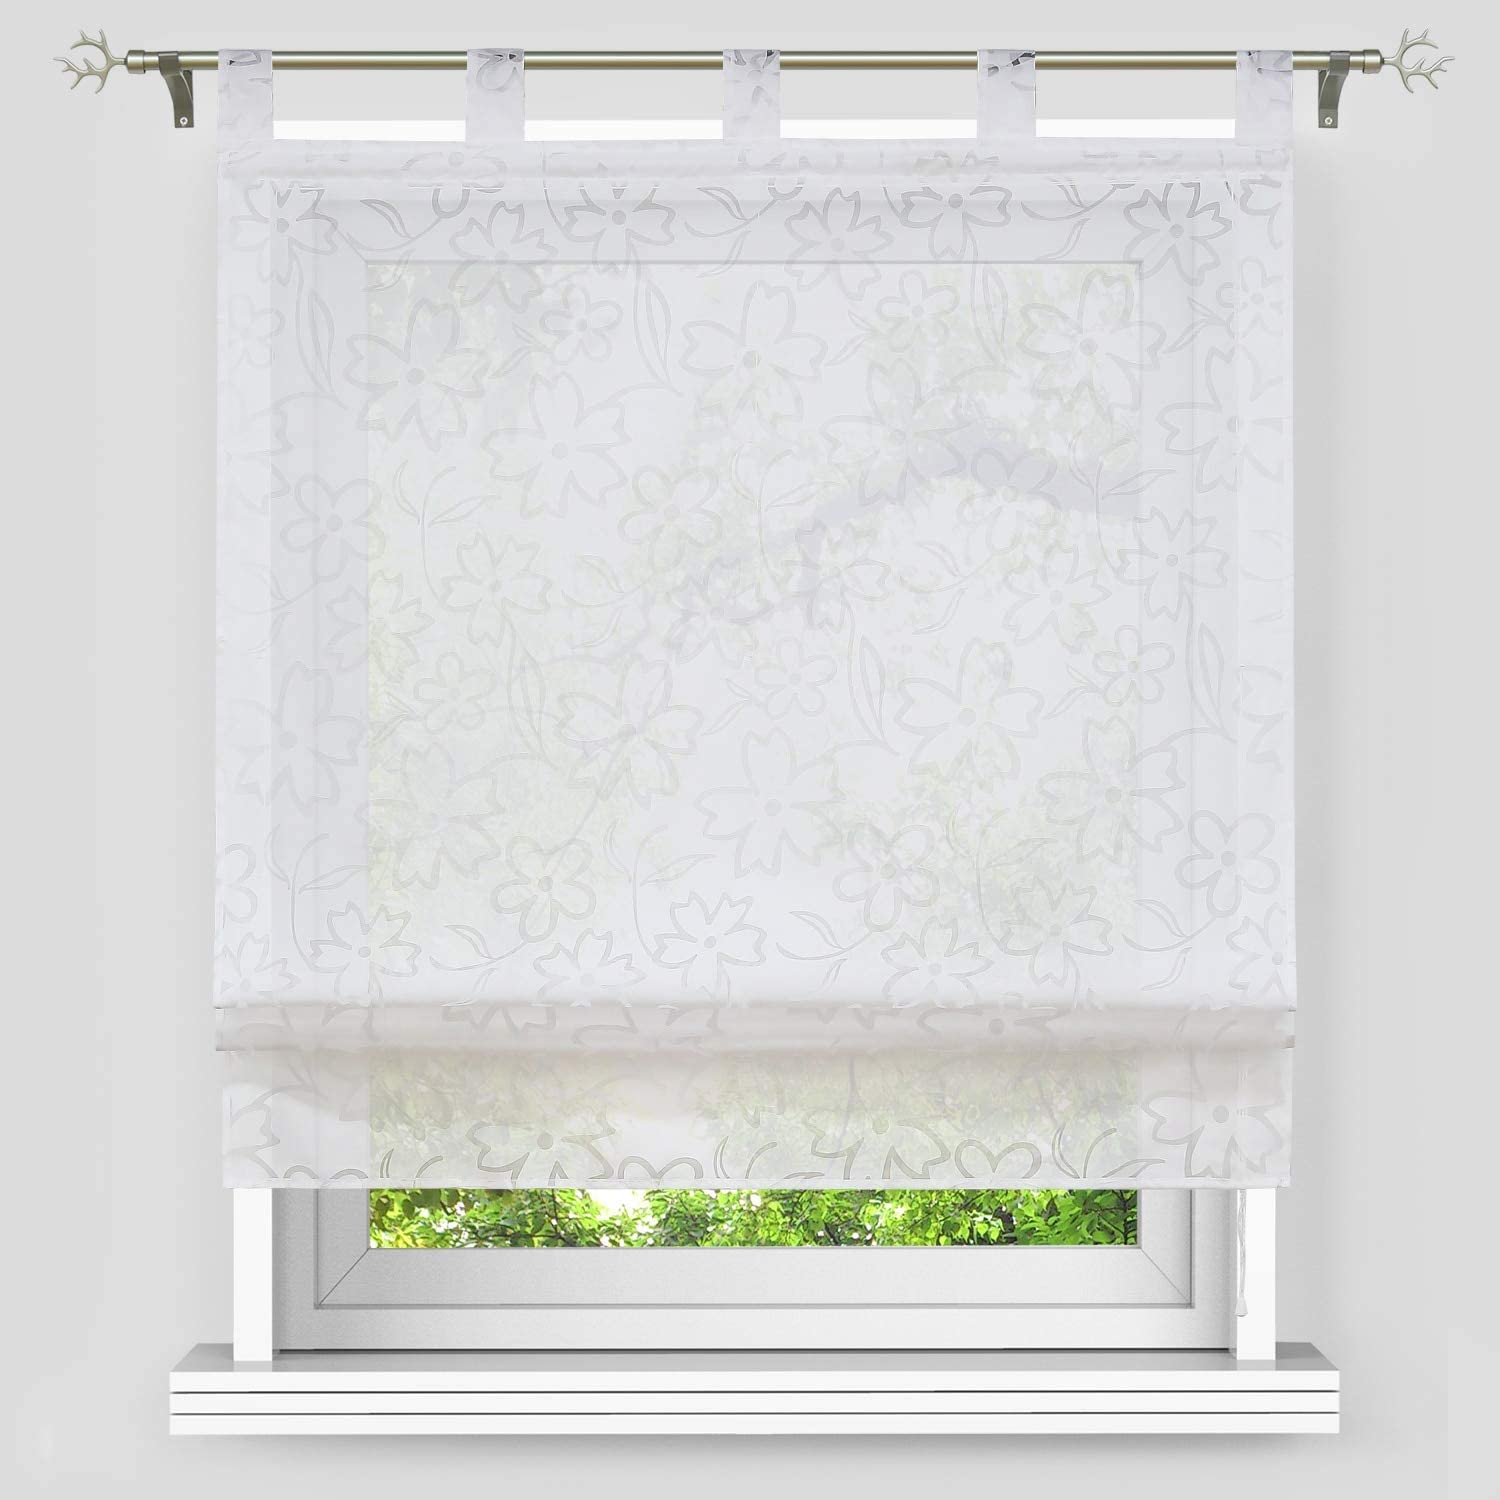 Yujiao Mao Voile Sheer Window Curtain Burnout Roman Shade Tab Top Adjustable Balloon Shades for Kitchen Bedroom Bathroom,1pc White,W23 x L55 inch